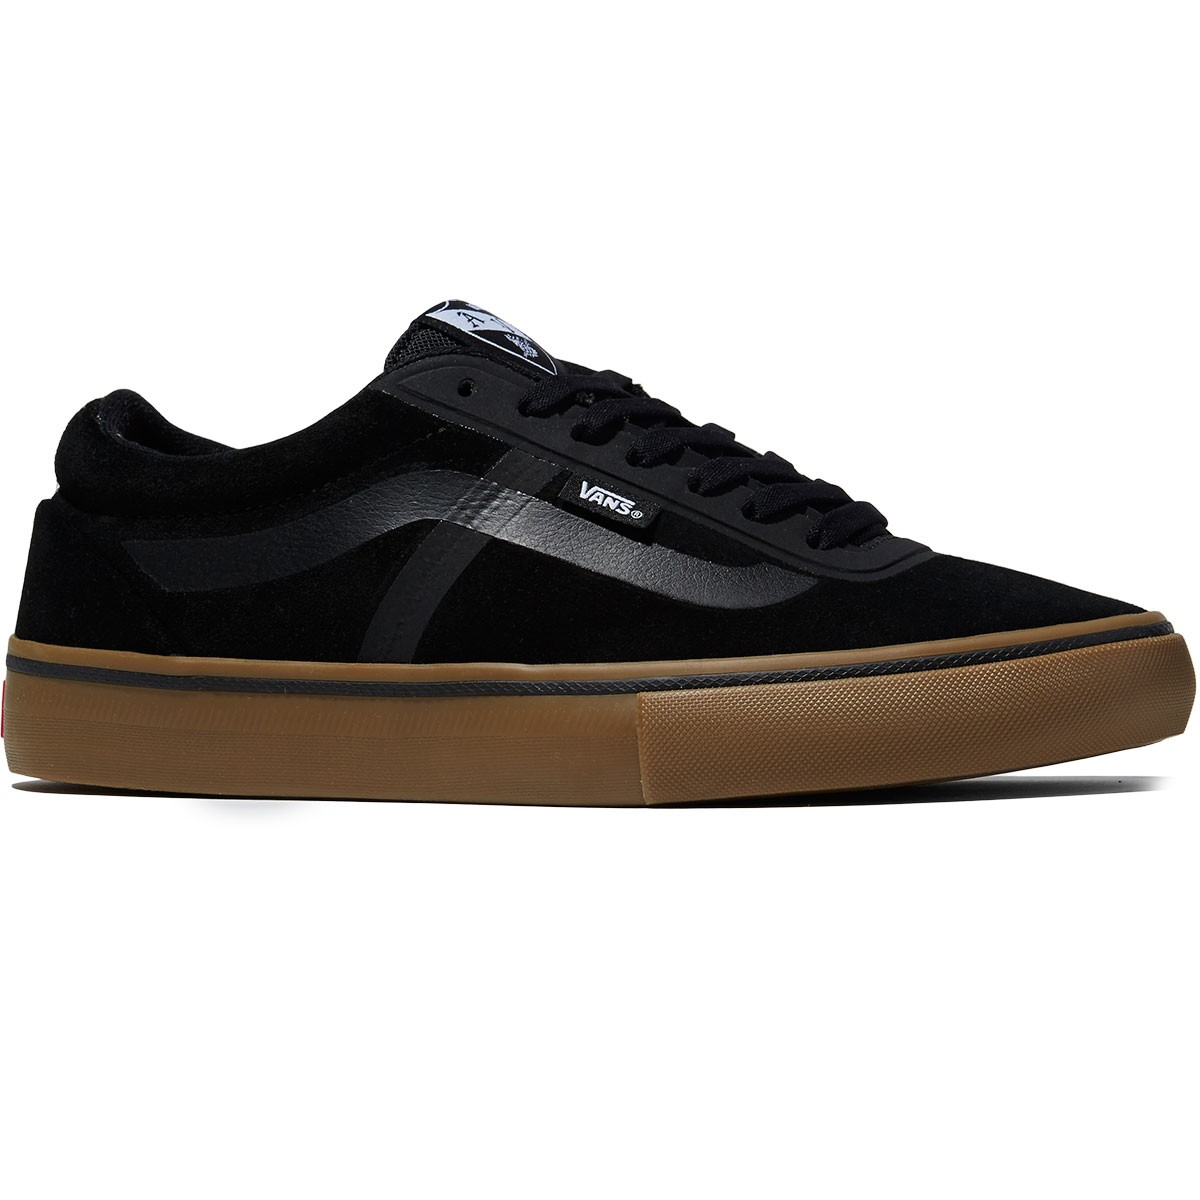 Vans AV RapidWeld Pro Shoes - Black/Gum - 8.0